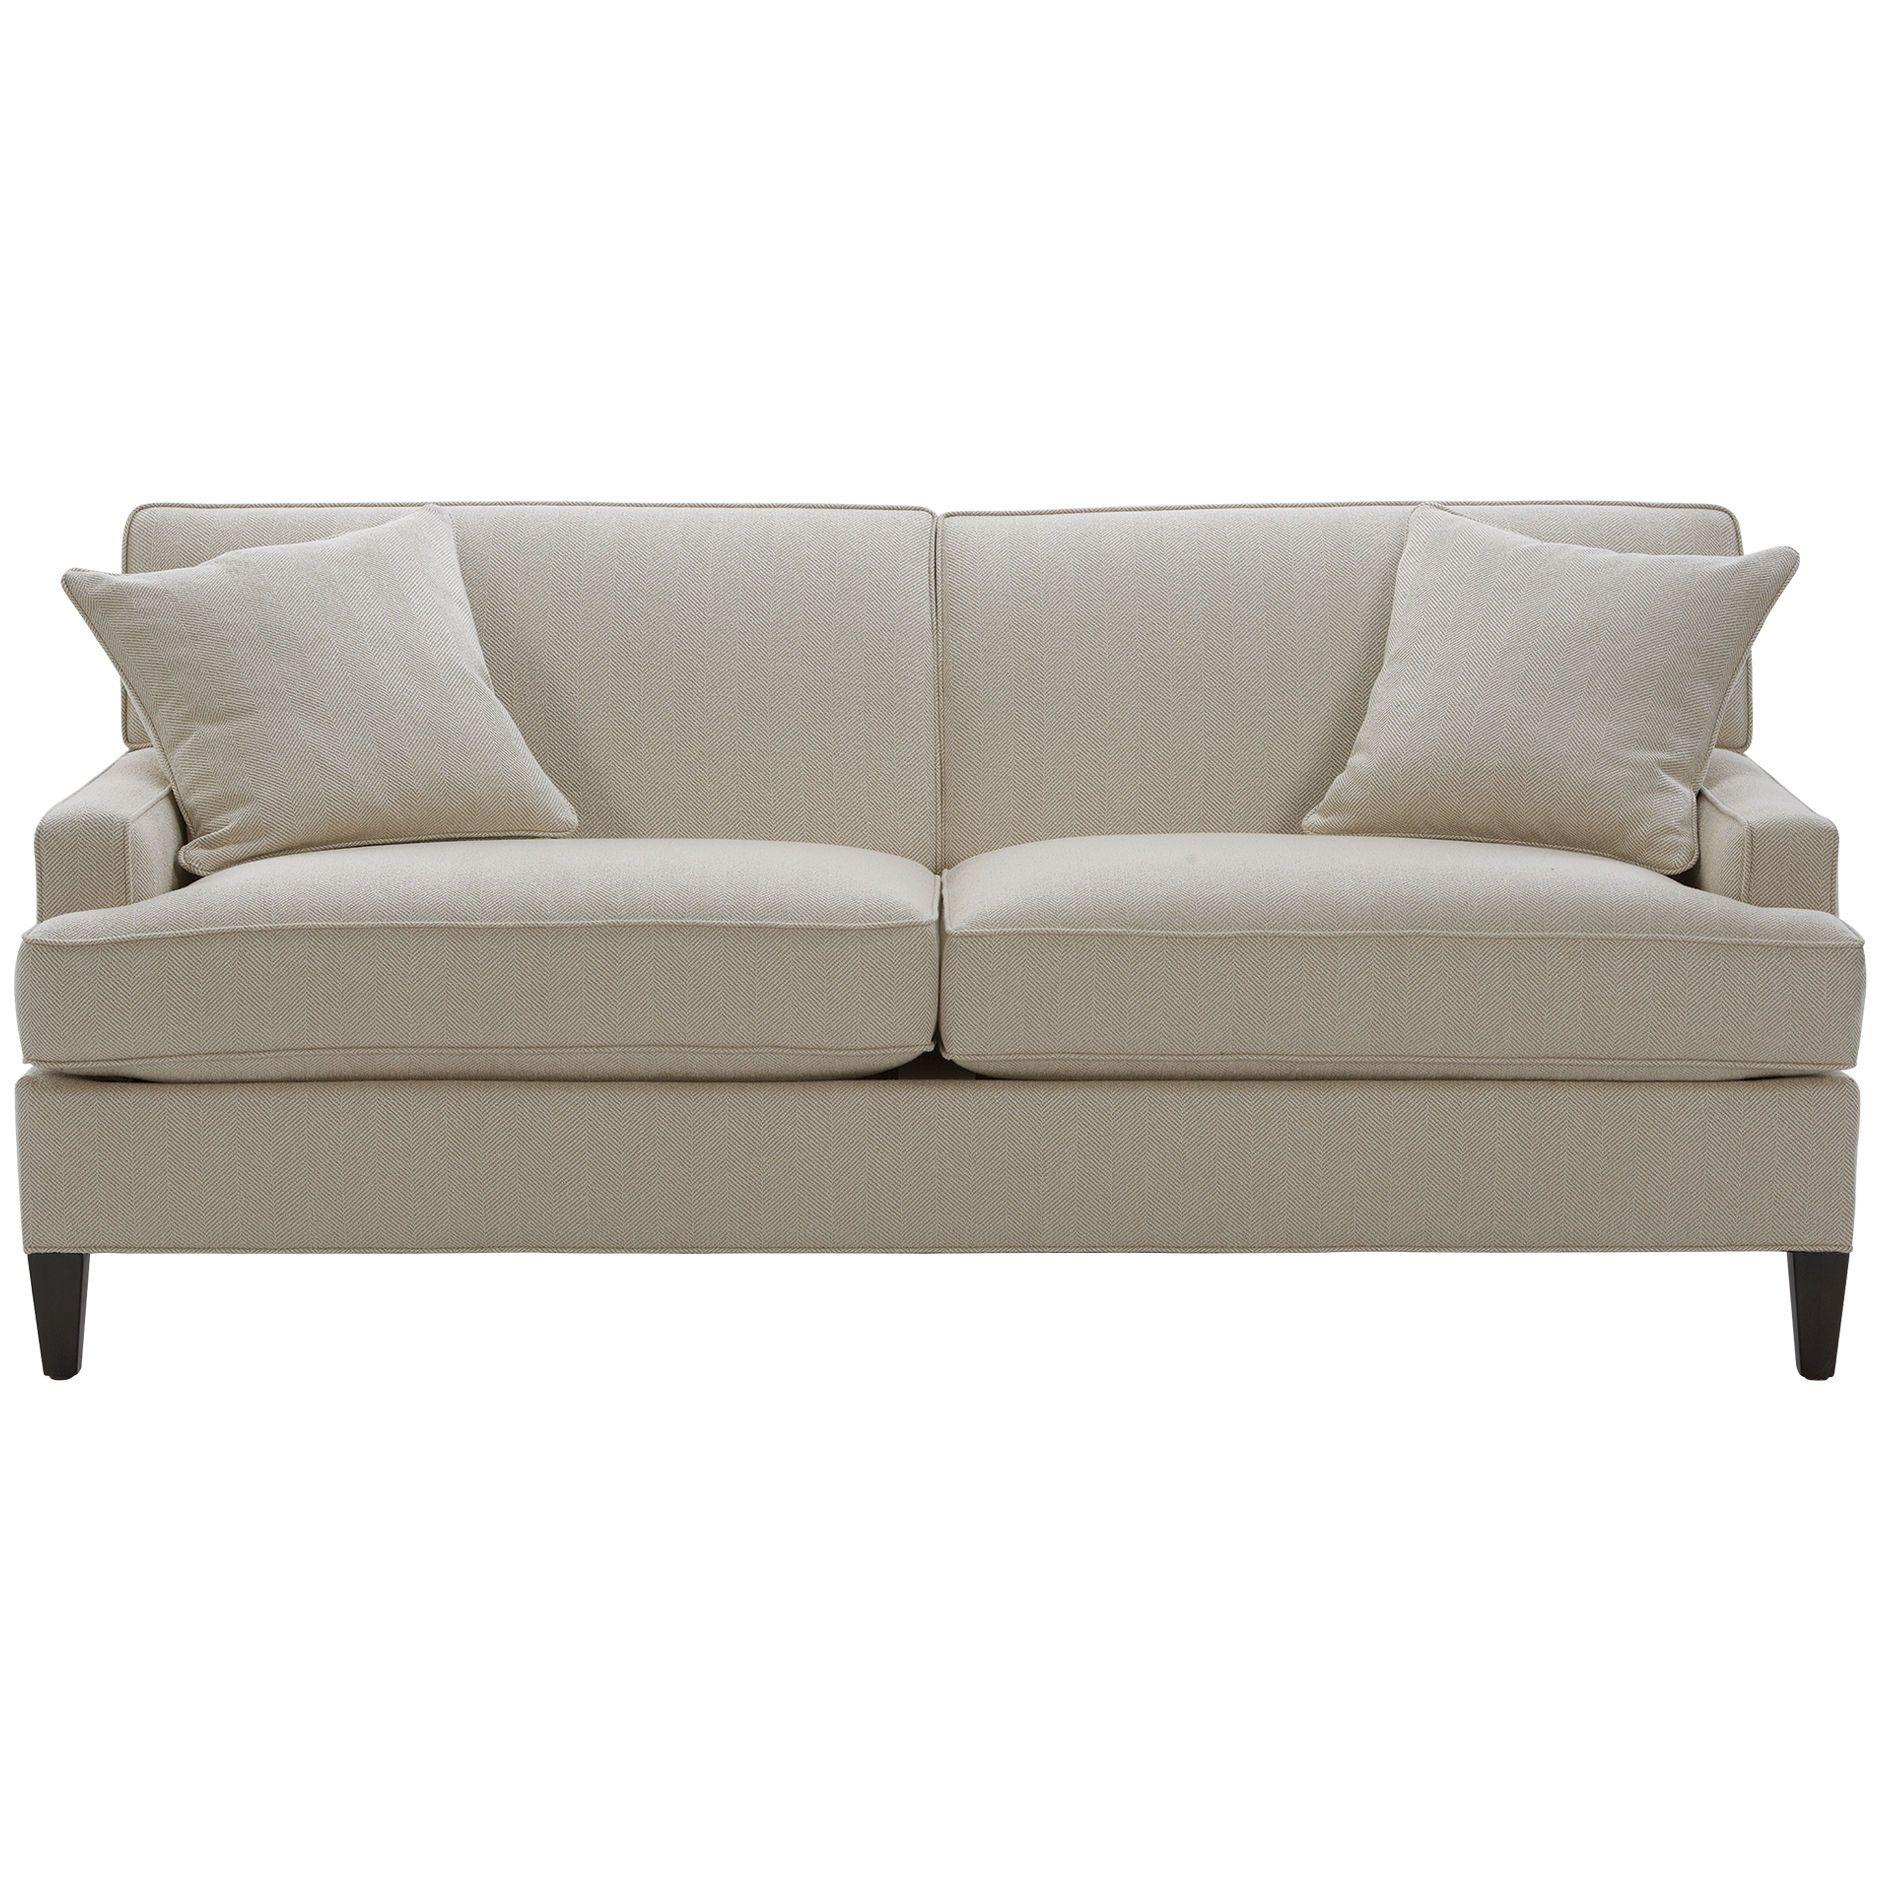 Bryant Sofa, Turner/ Oatmeal   Ethan Allen US $1499 Add More For Other  Fabrics